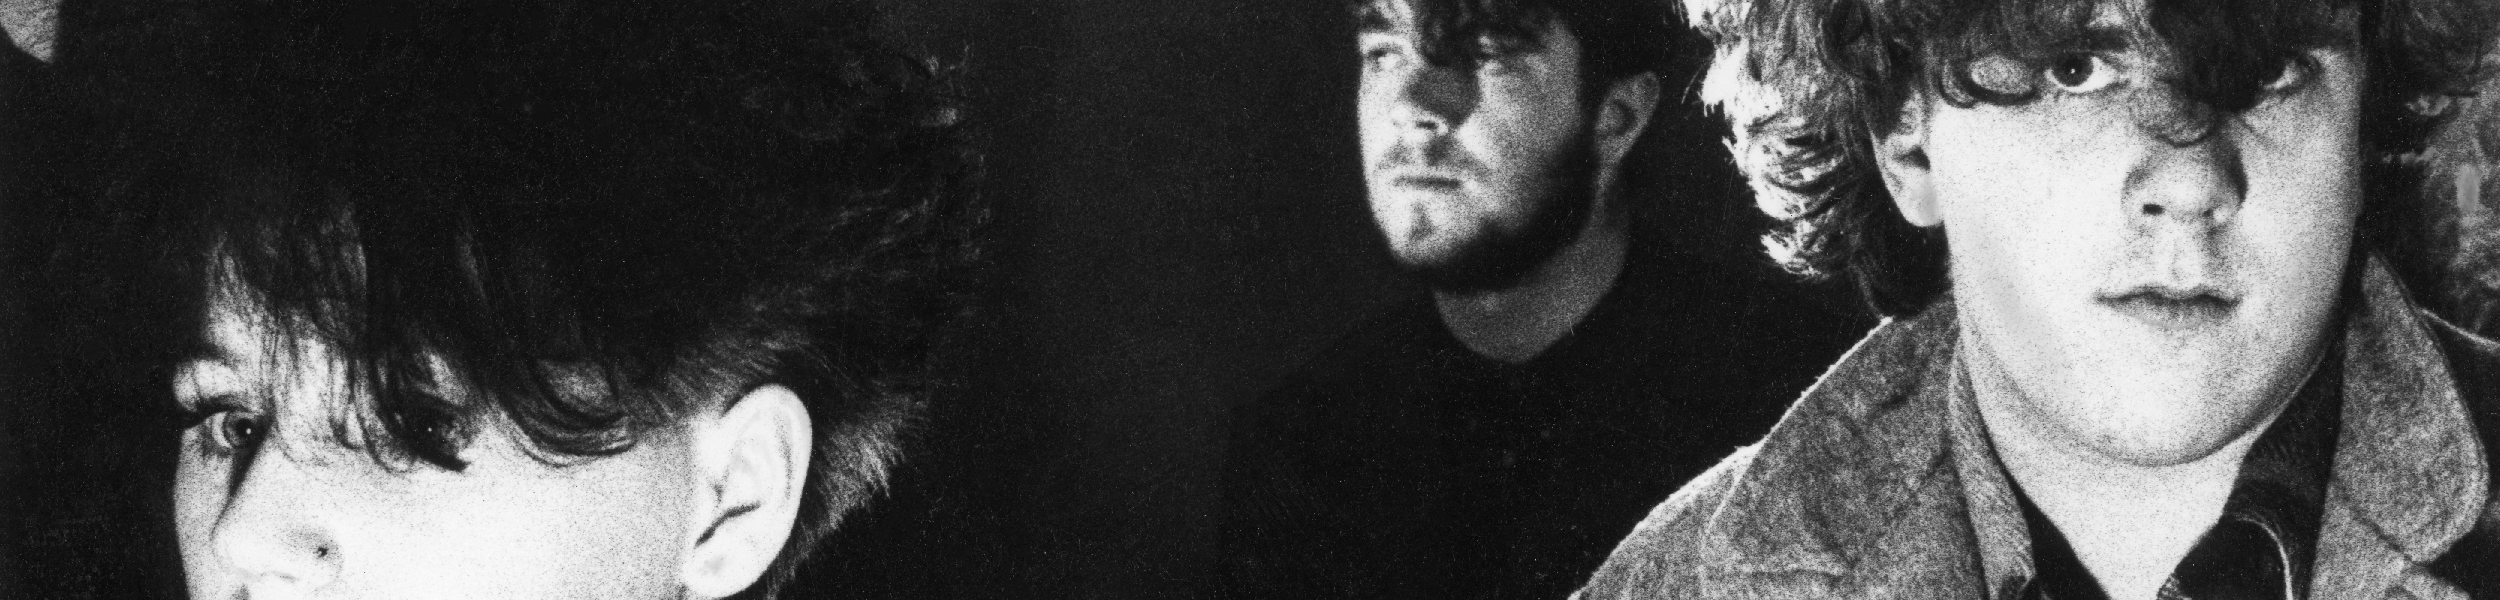 Cocteau Twins - 'Garlands' and 'Victorialand' Reissues Out Now